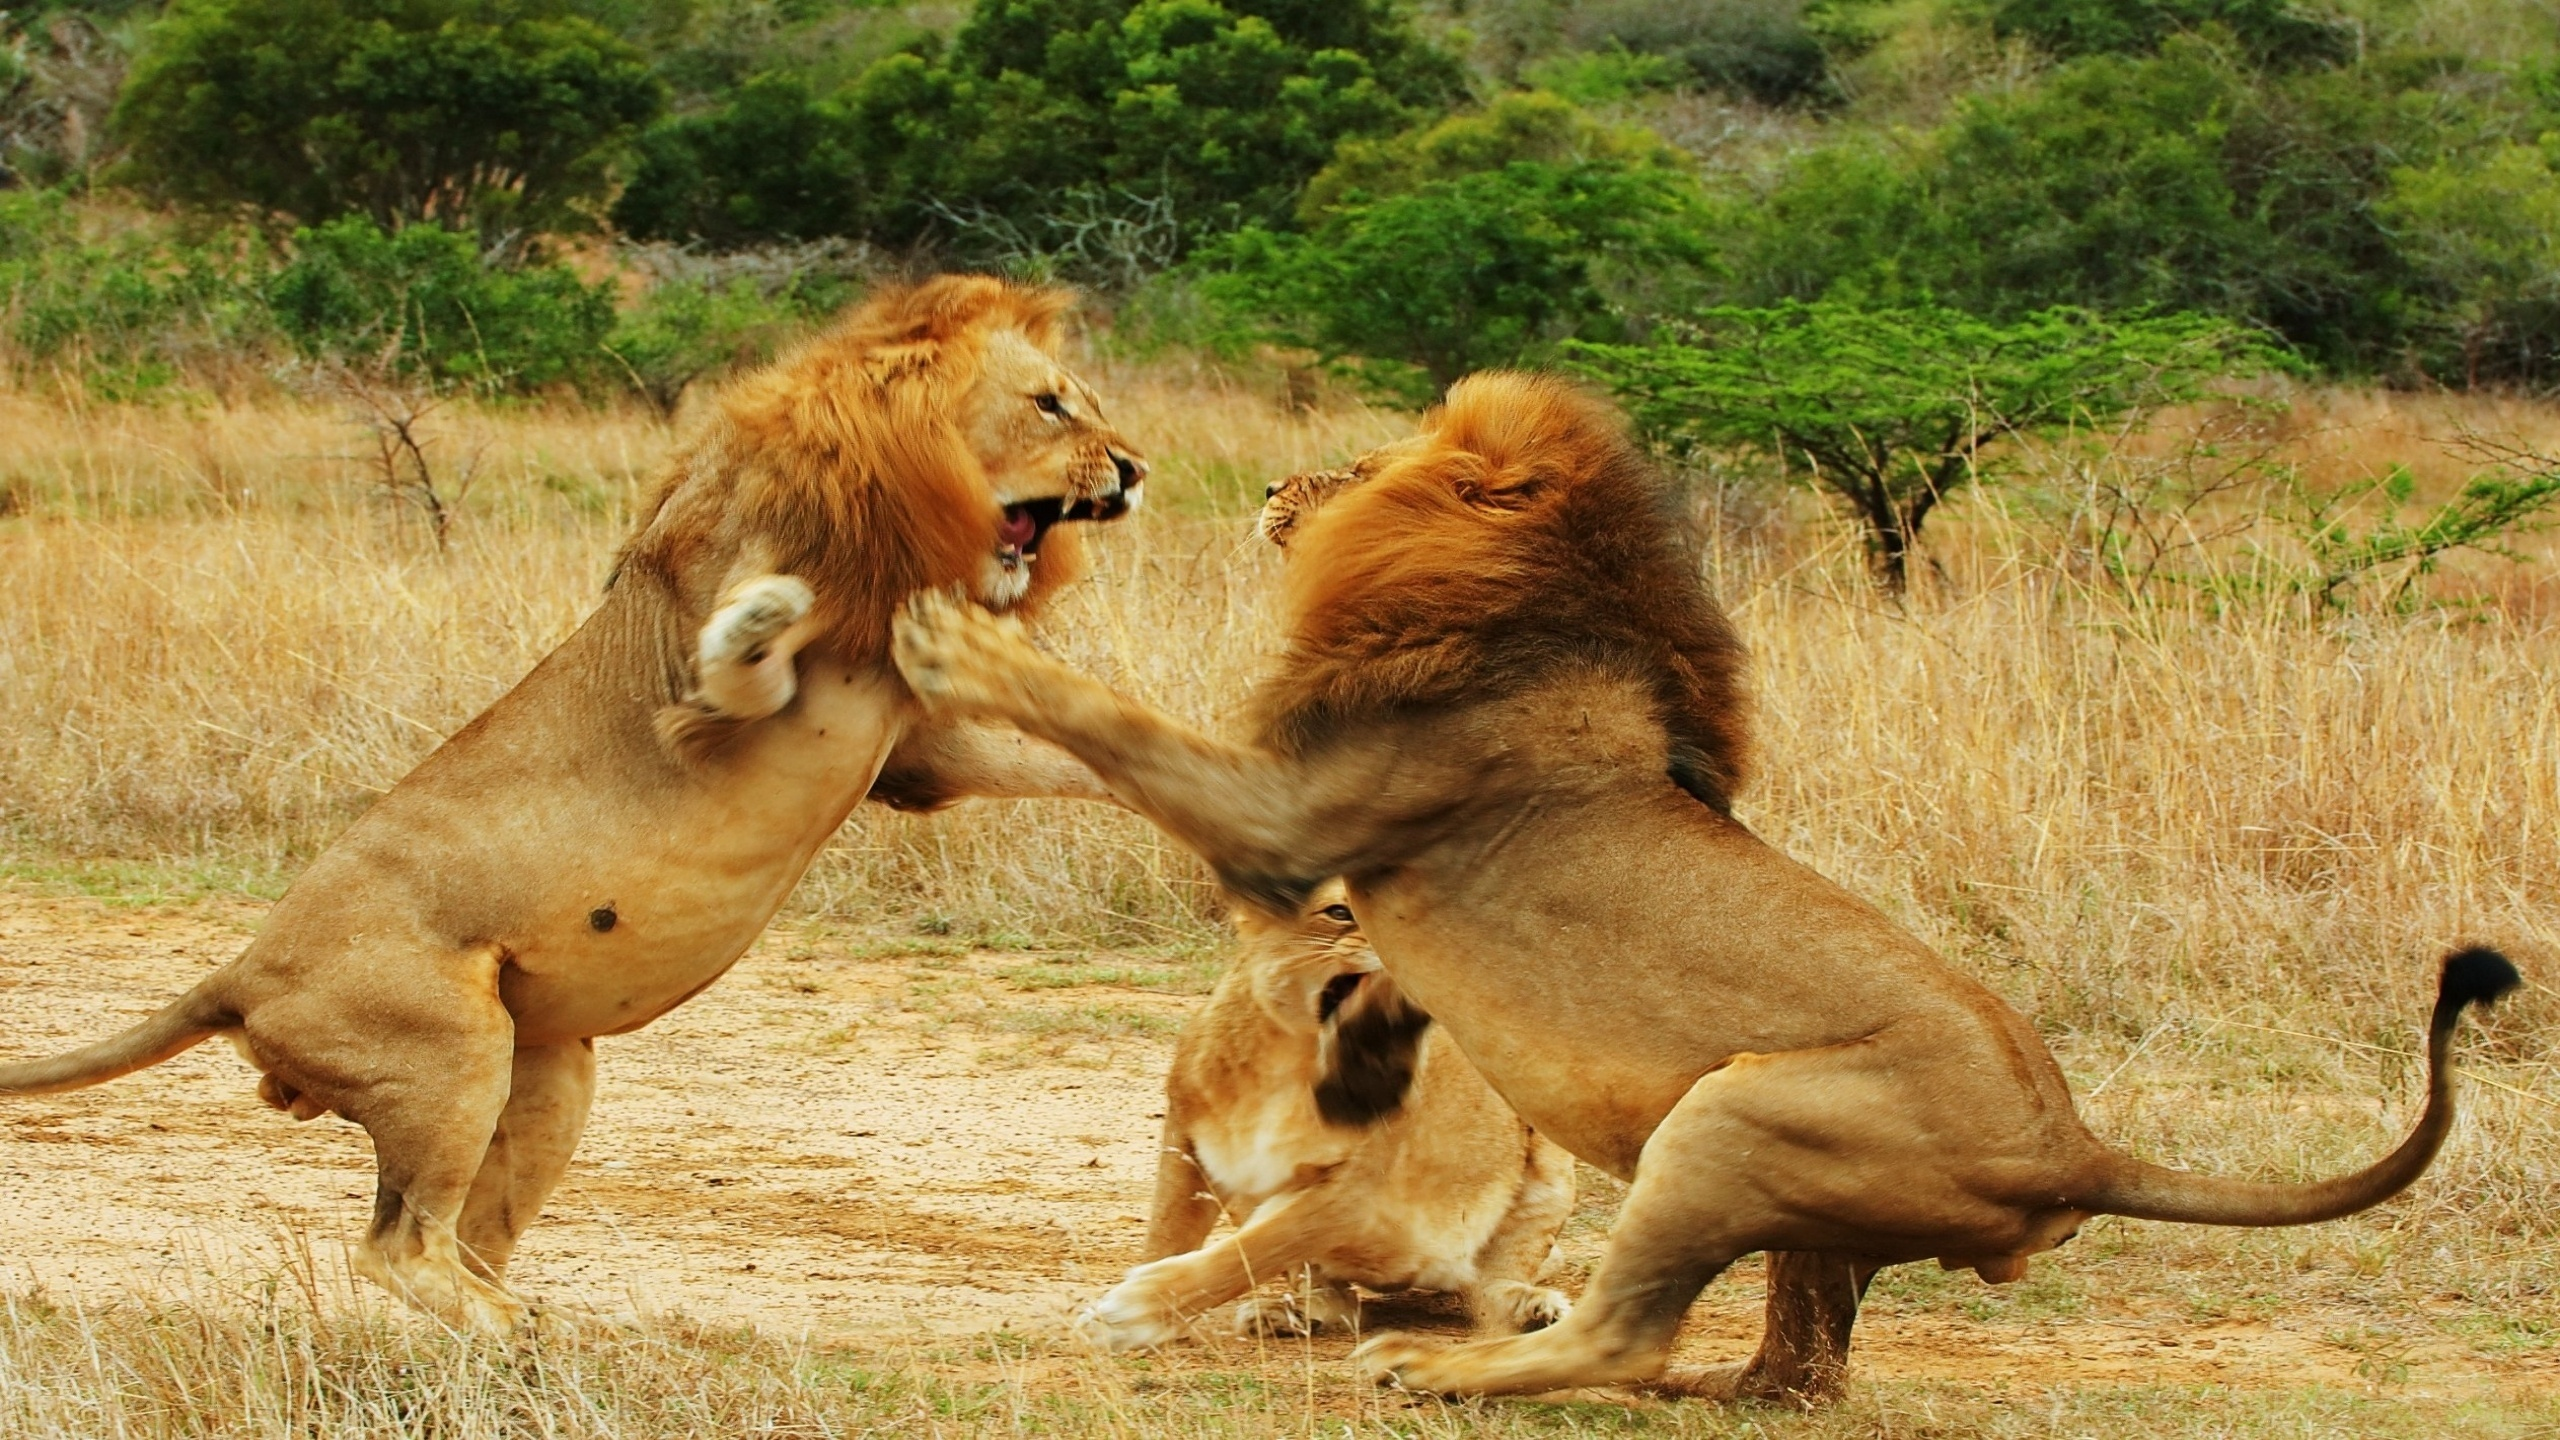 animals competing for territory - 700×461